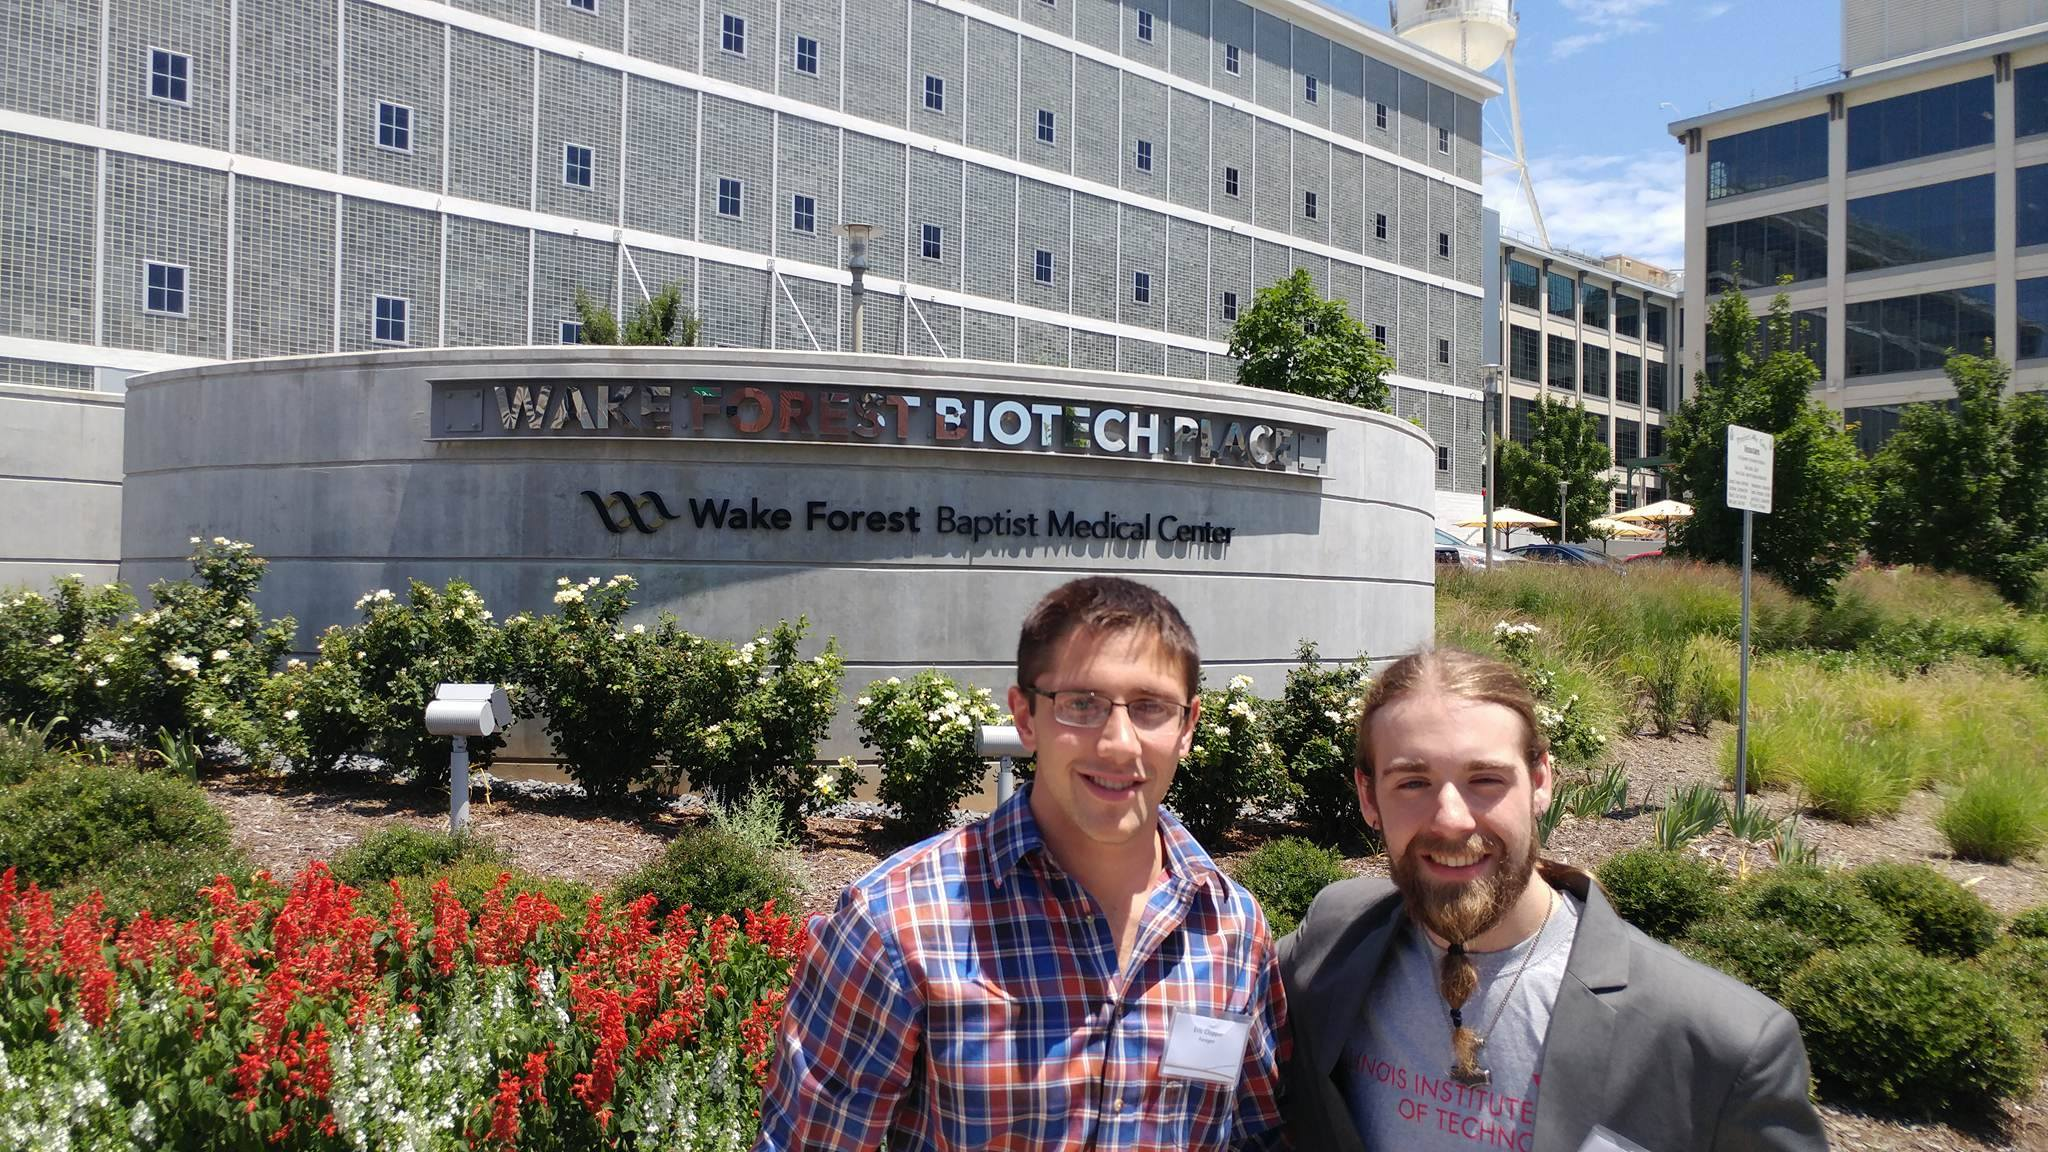 Eric_and_Eric_in_front_of_WF_Biotech_Place.jpg